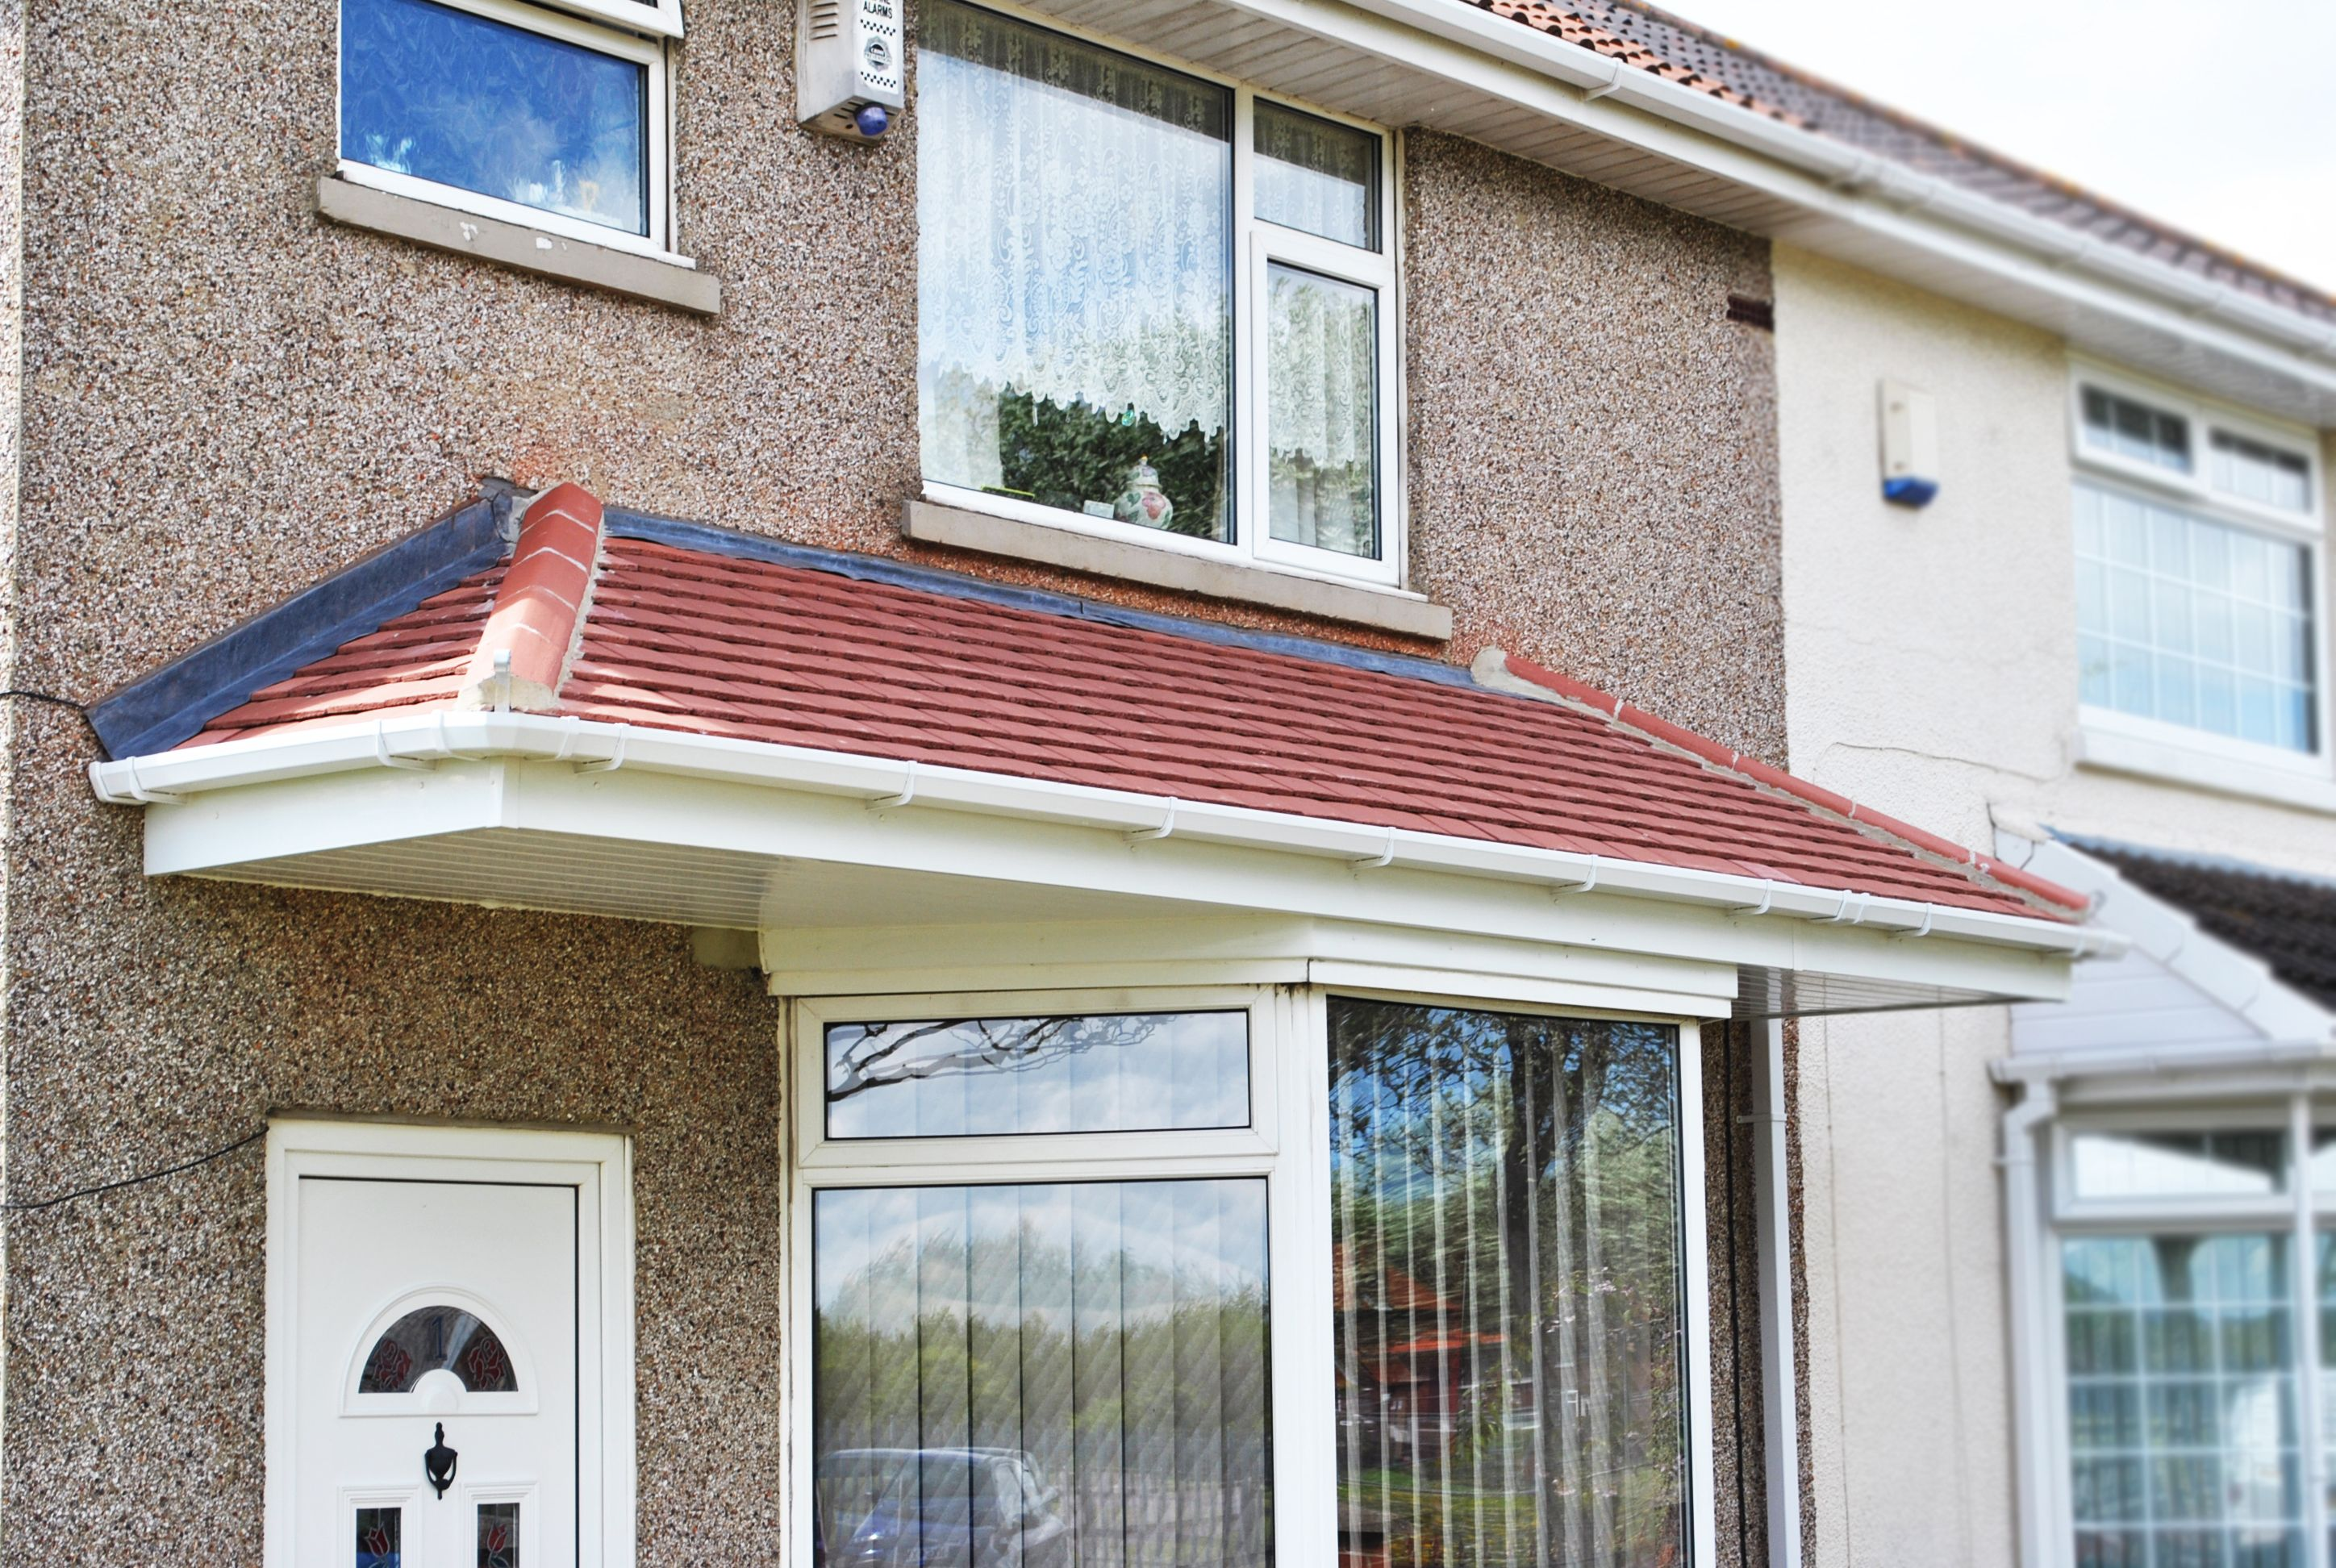 Beautiful Tiled Canopy above a Bay window and Front Door